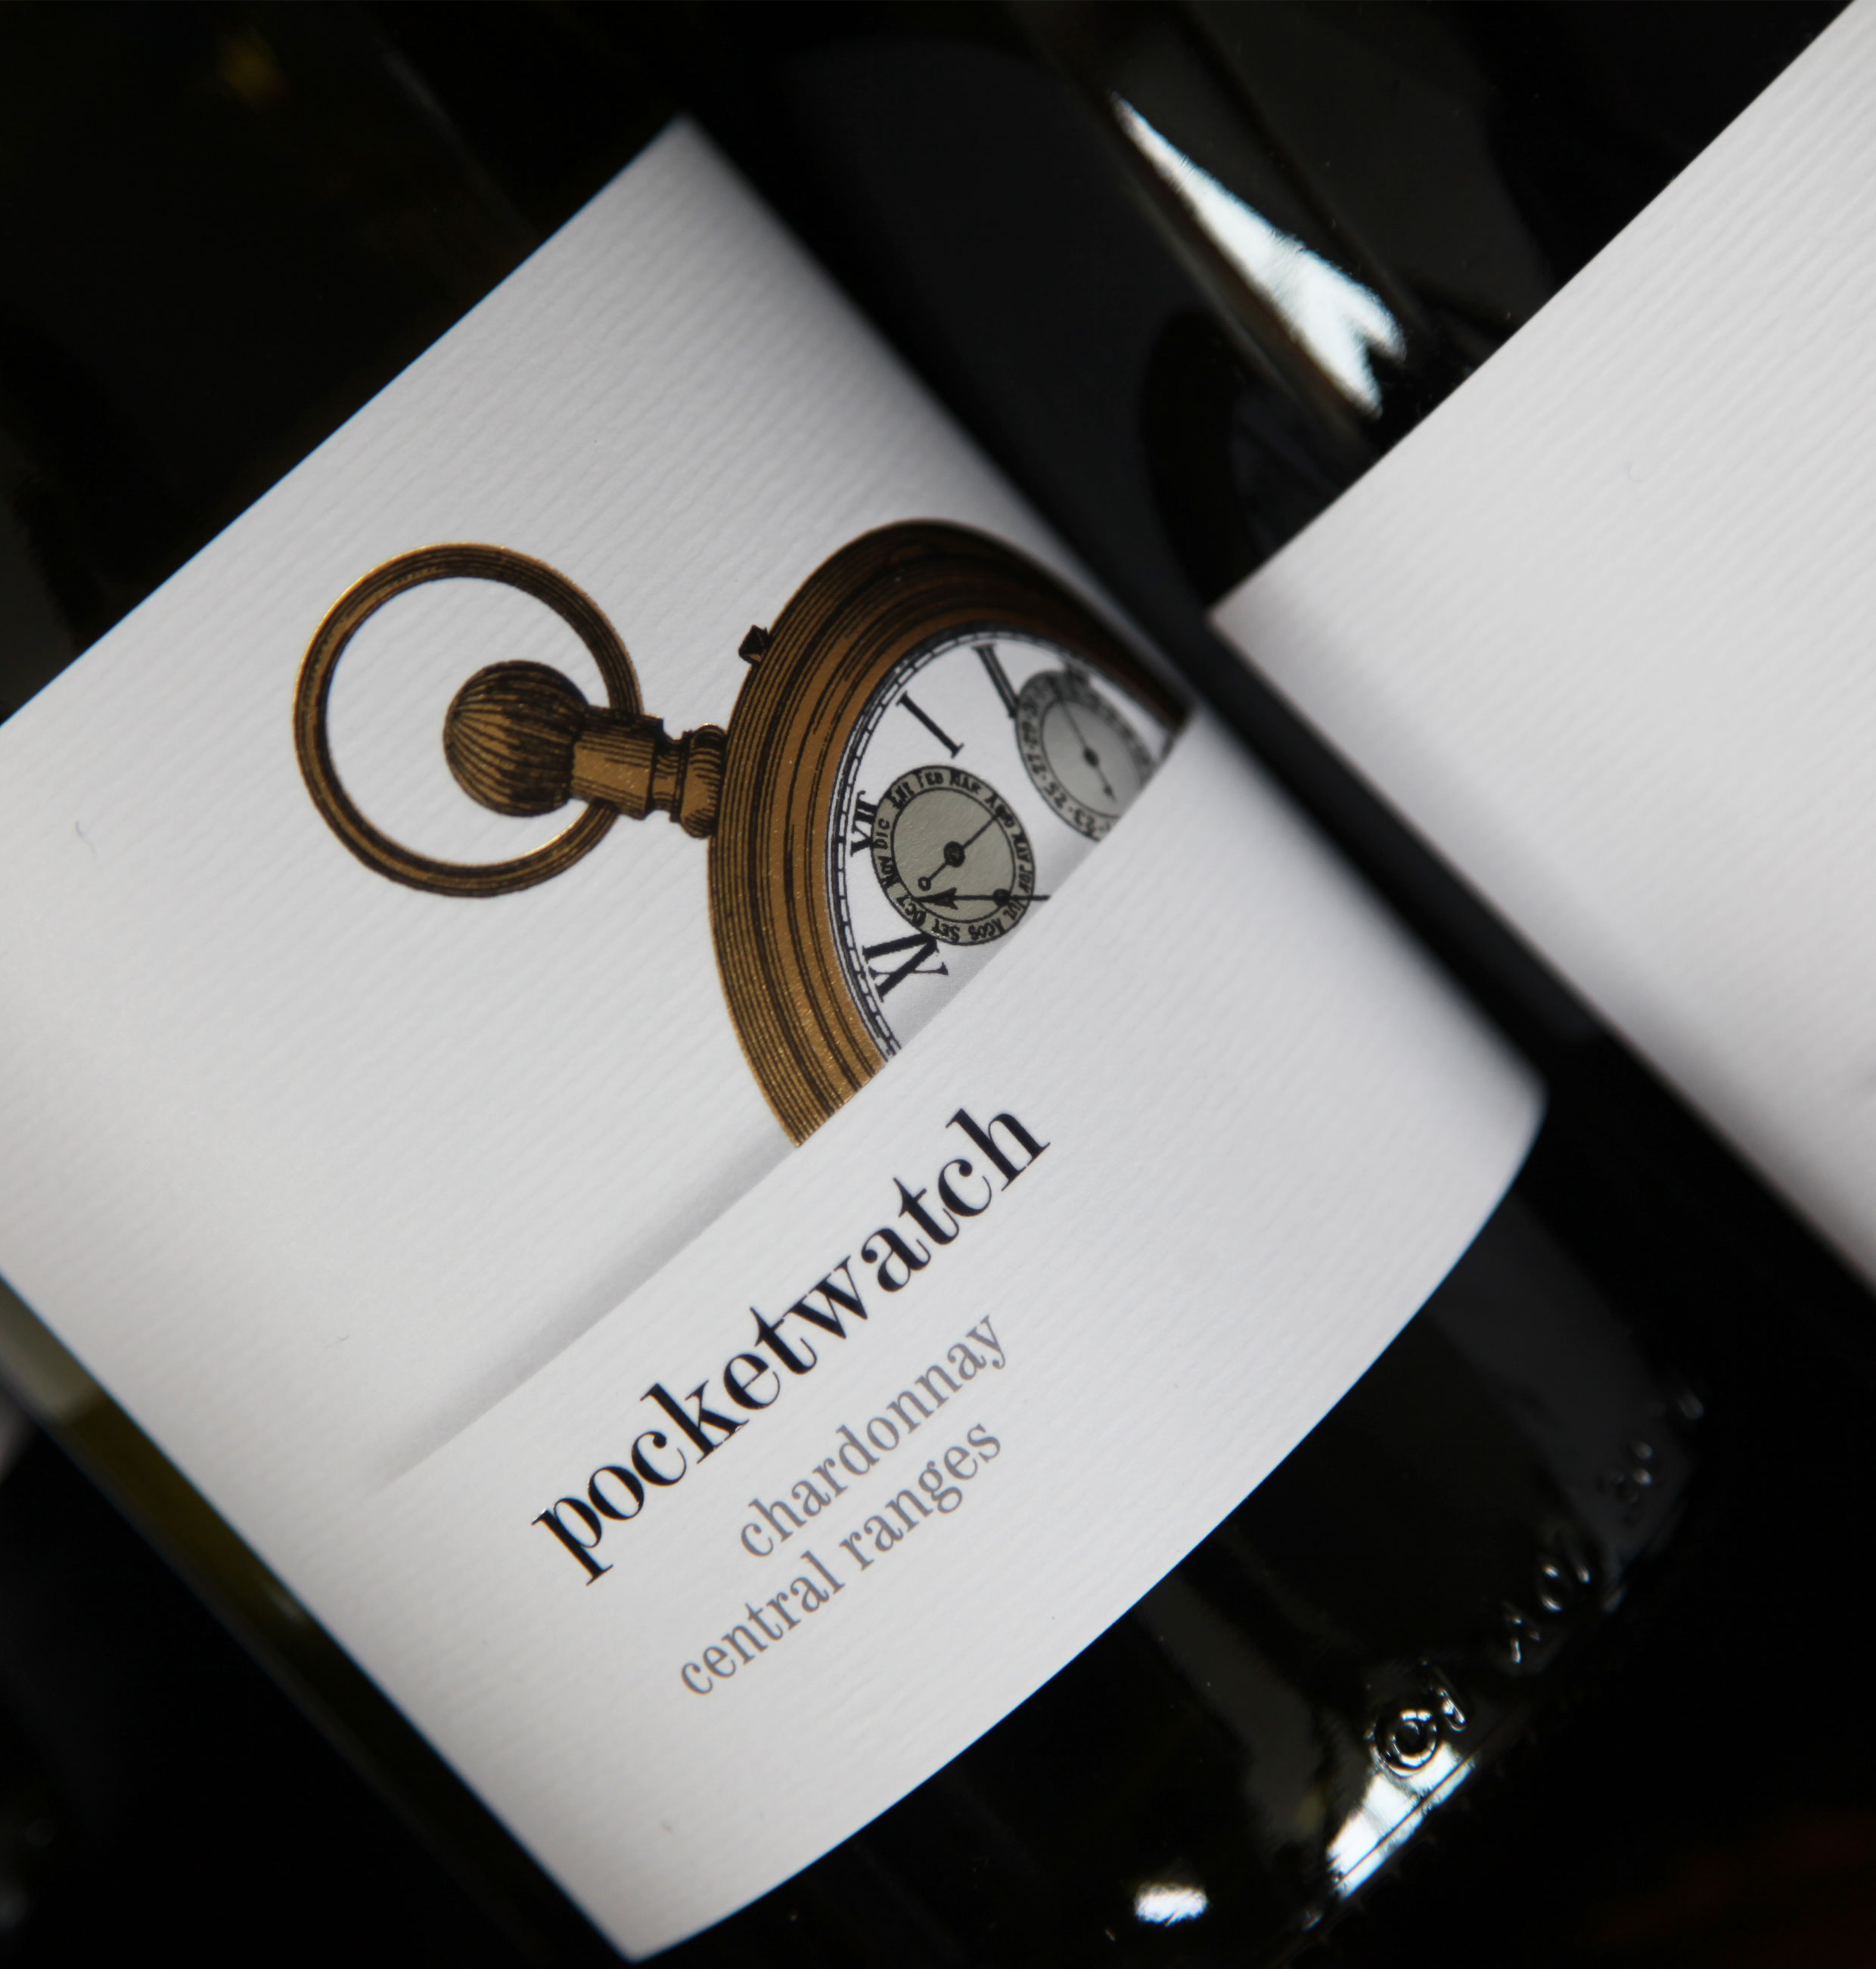 Mudgee Wine Show 2016 results confirm the Oatley's belief in chardonnay and shiraz